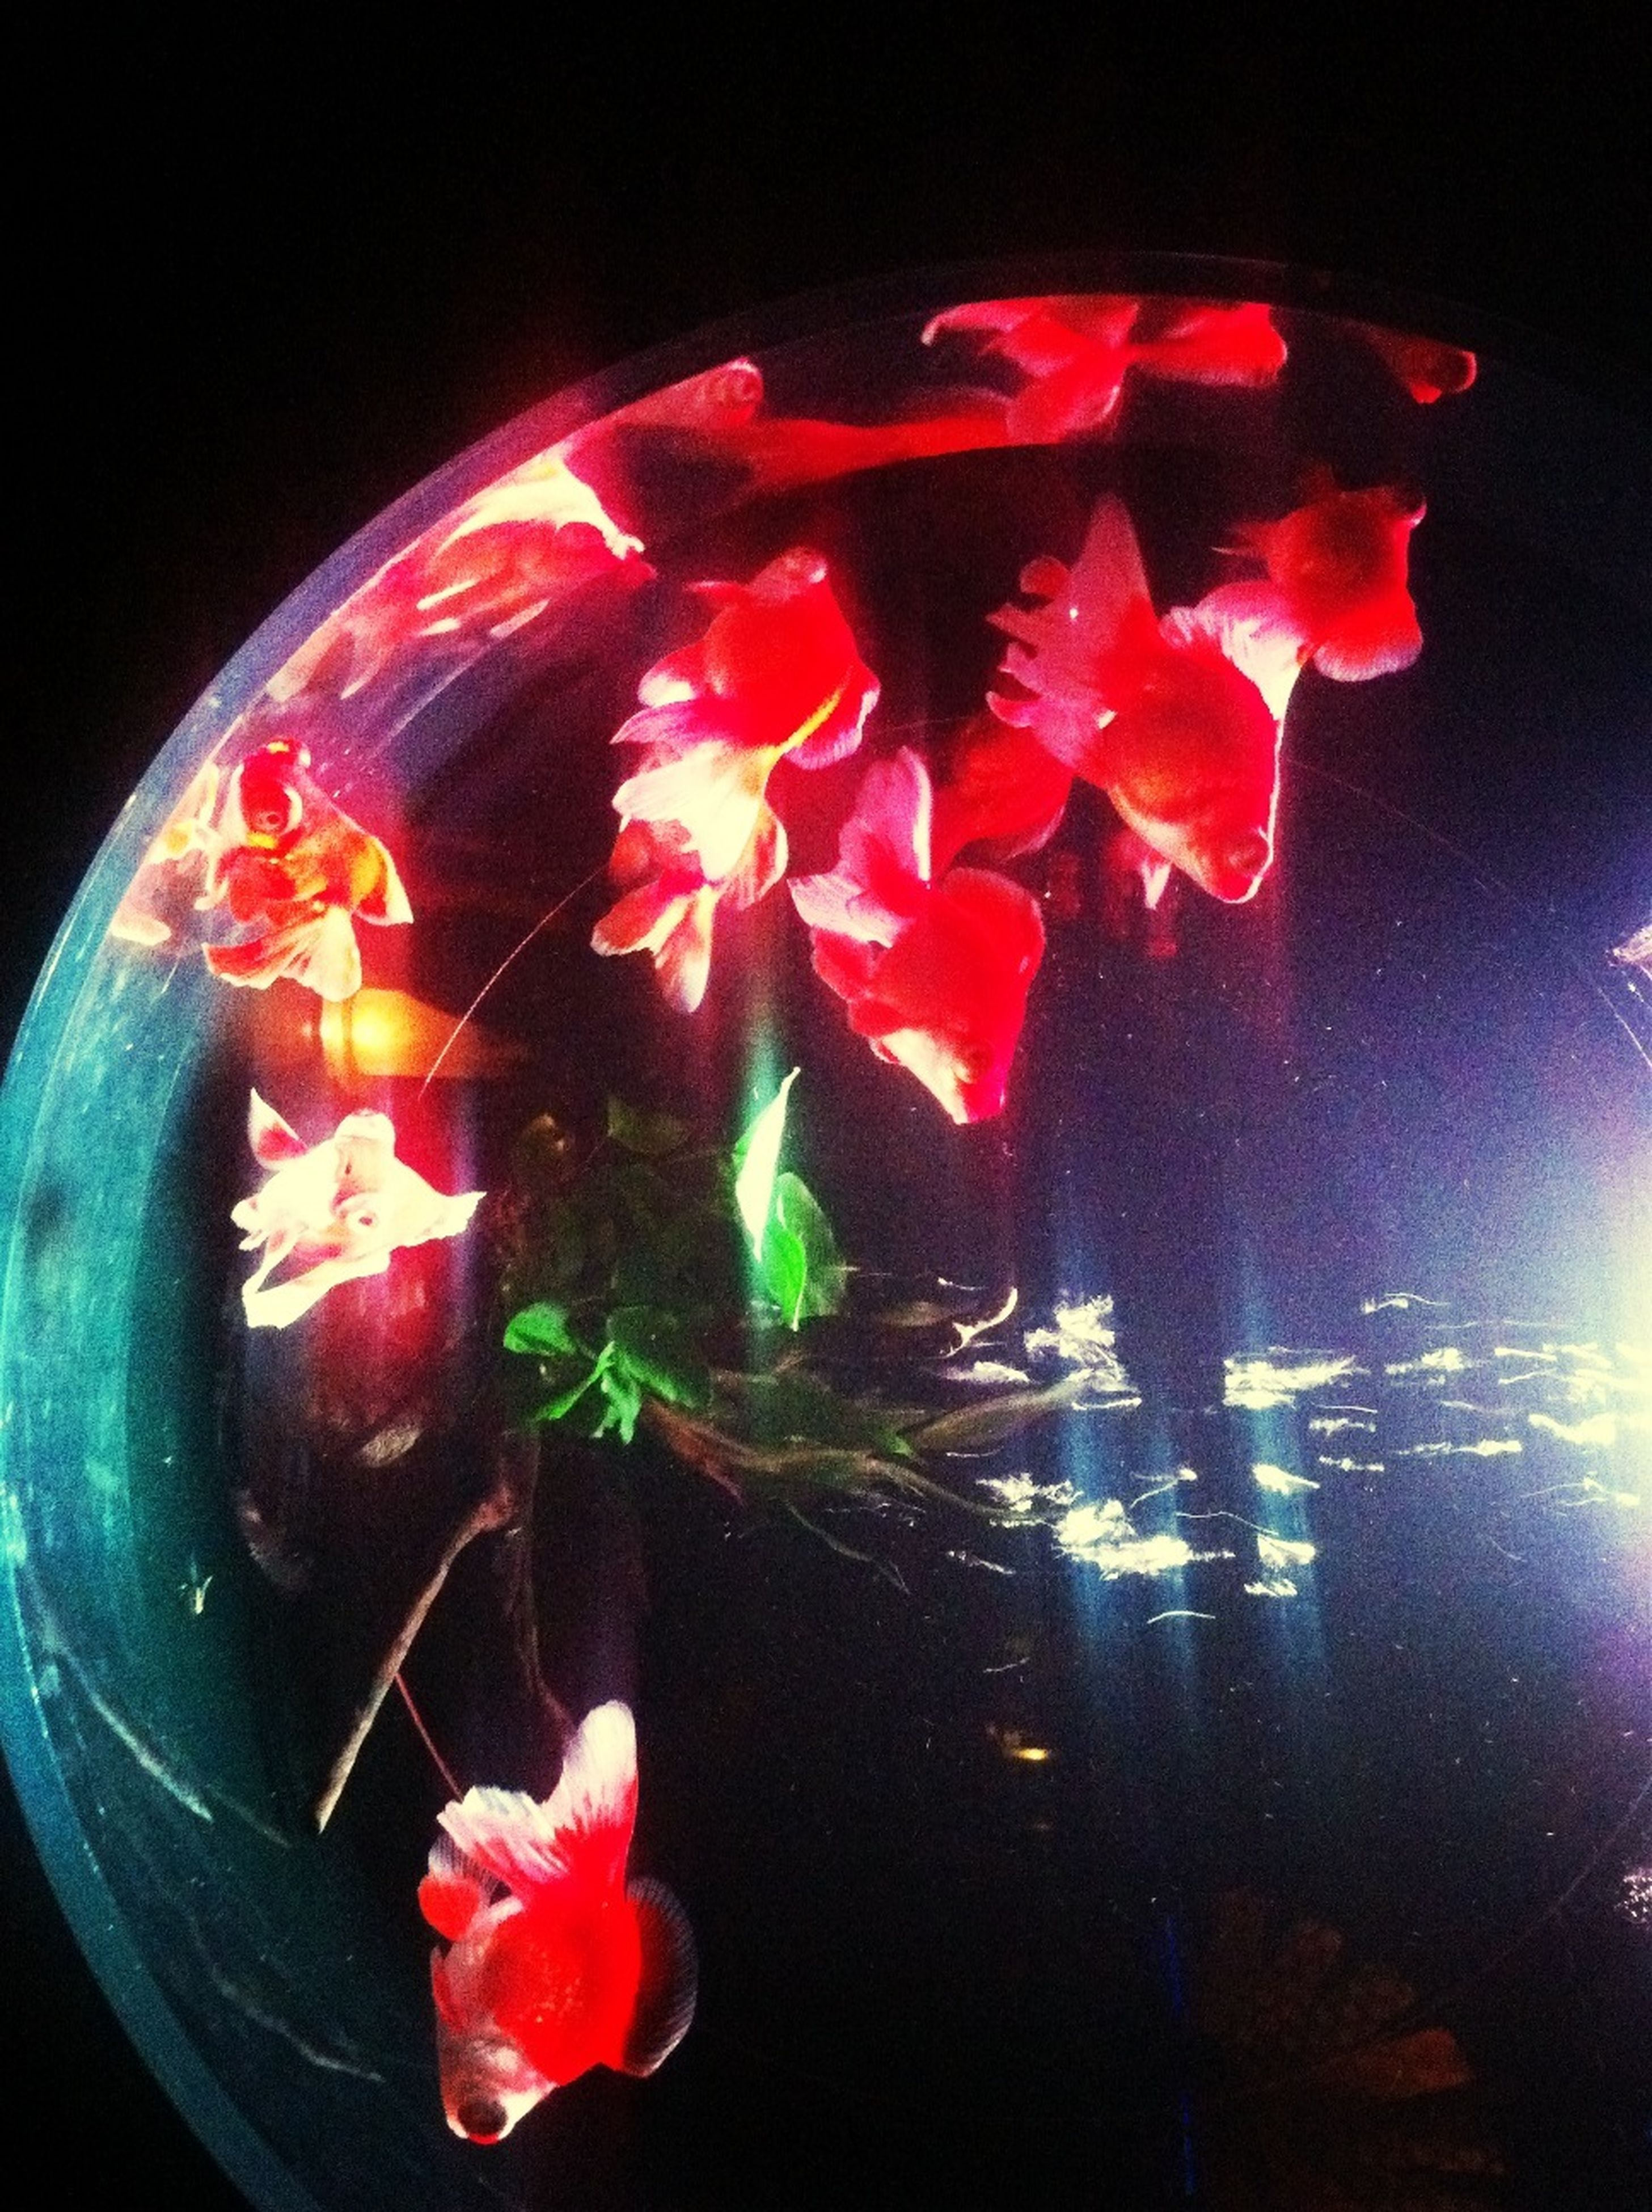 red, flower, indoors, pink color, night, close-up, fragility, freshness, petal, glass - material, high angle view, multi colored, black background, transparent, illuminated, burning, water, no people, nature, dark